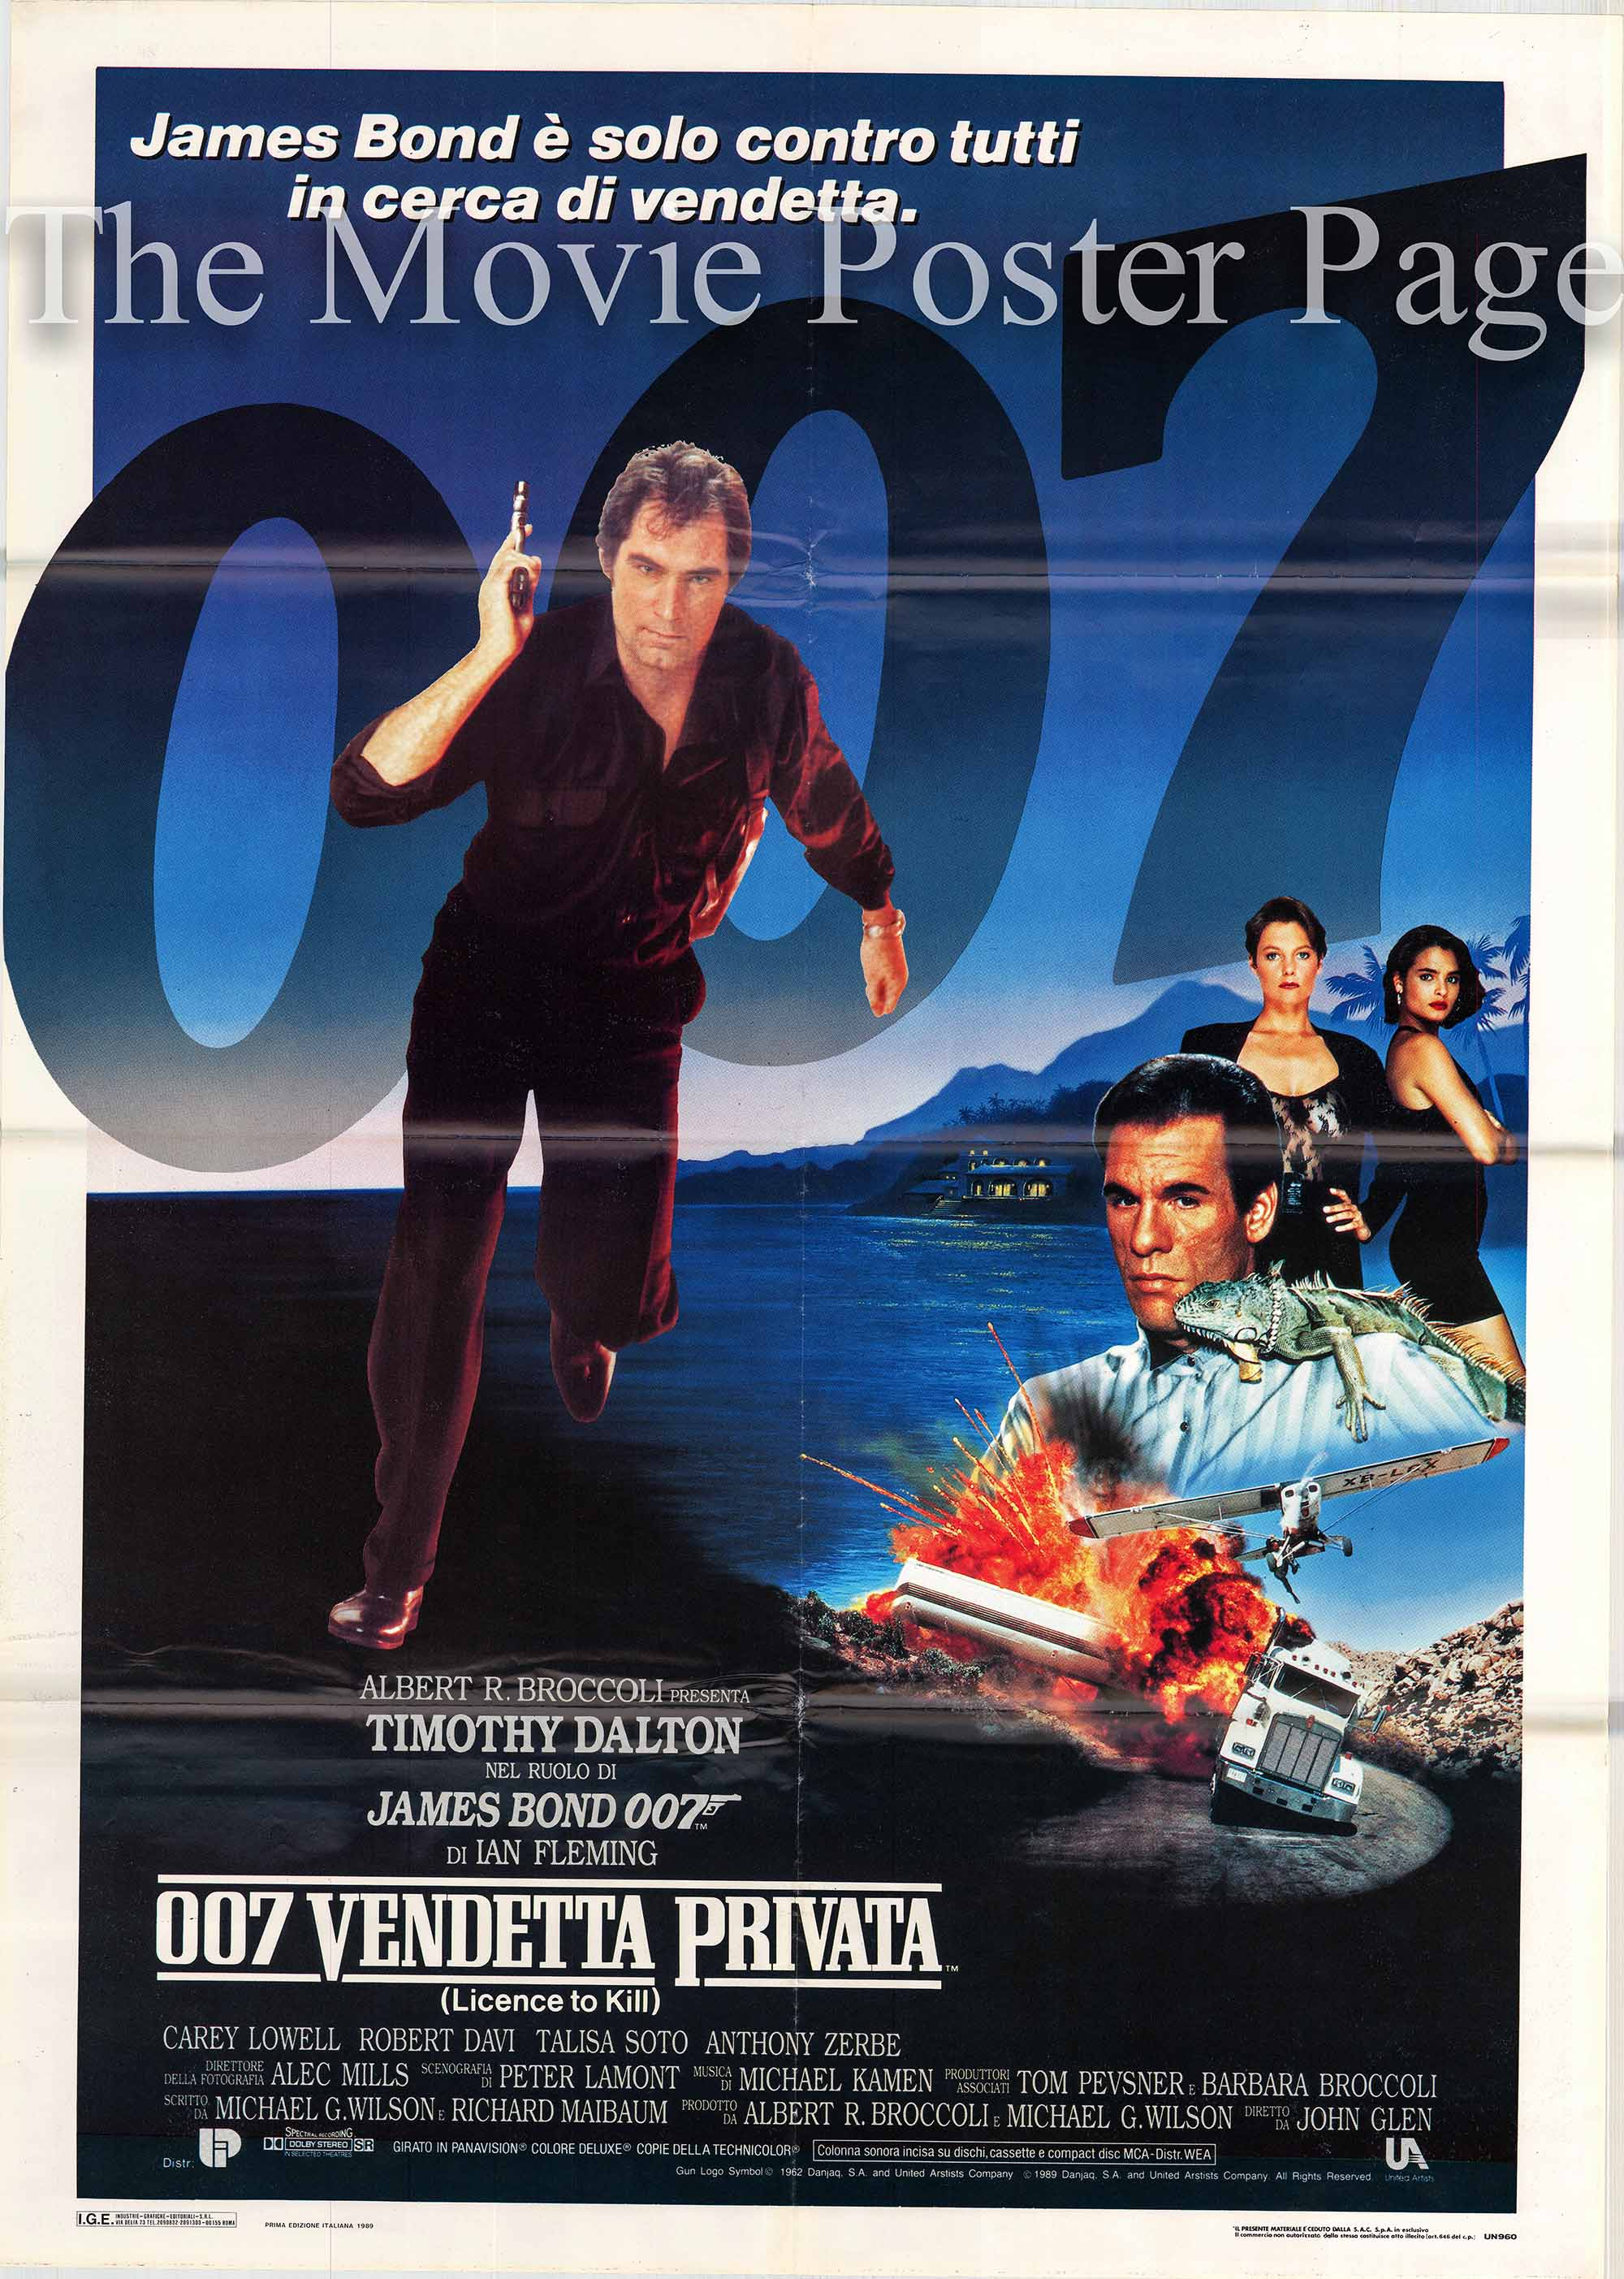 Pictured is the Italian 2-sheet promotional poster for the 1989 John Glen James Bond film License to Kill, starring Timothy Dalton.